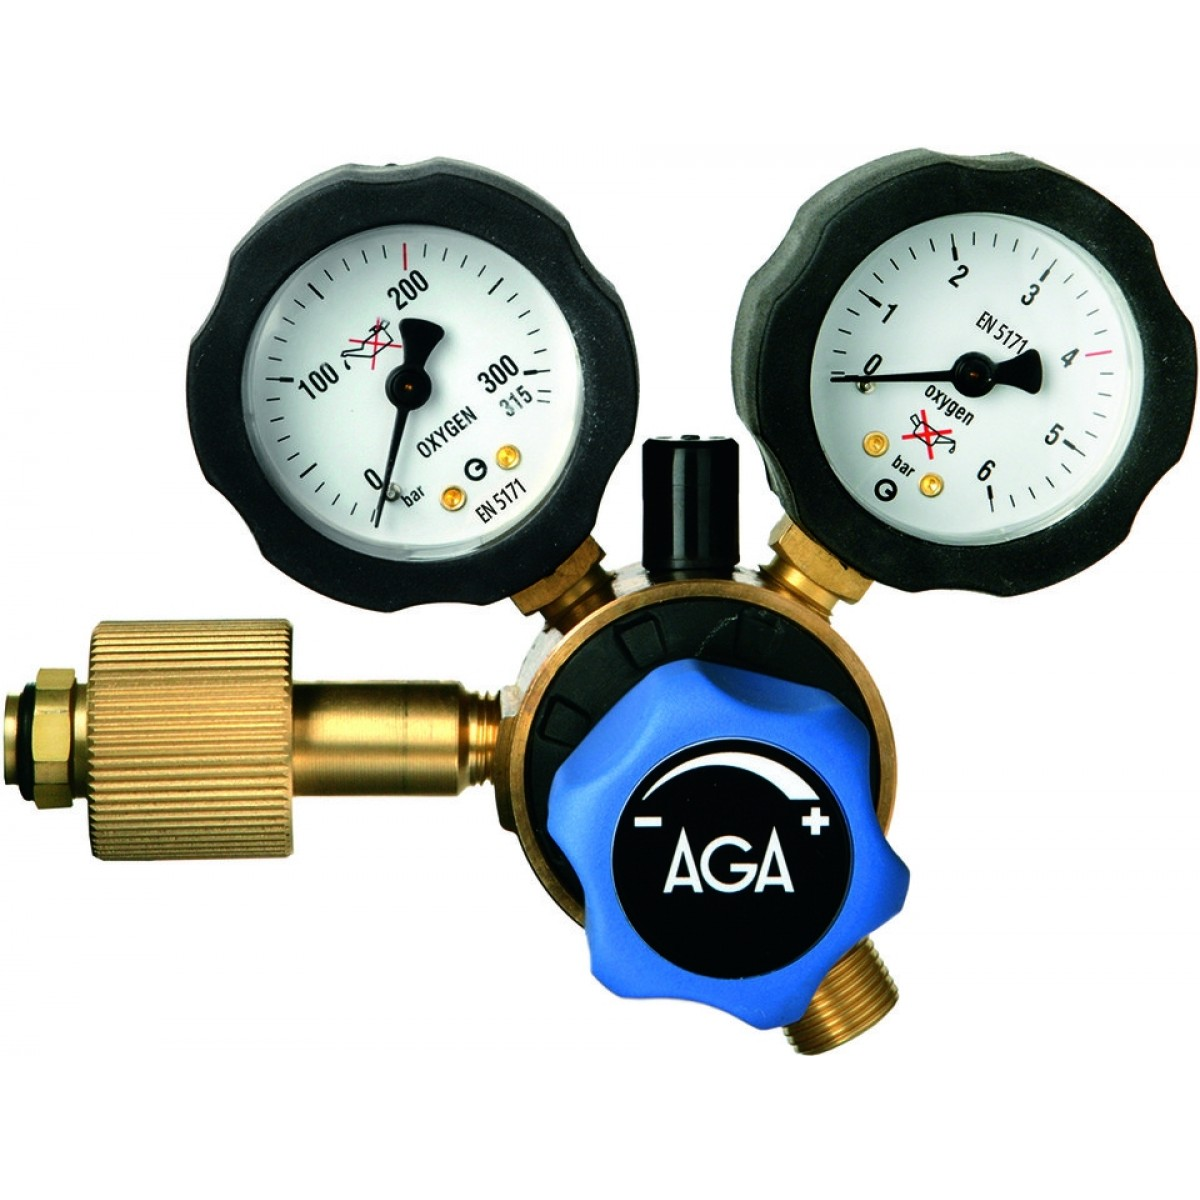 AGA Ilt regulator Fixicontrol-31